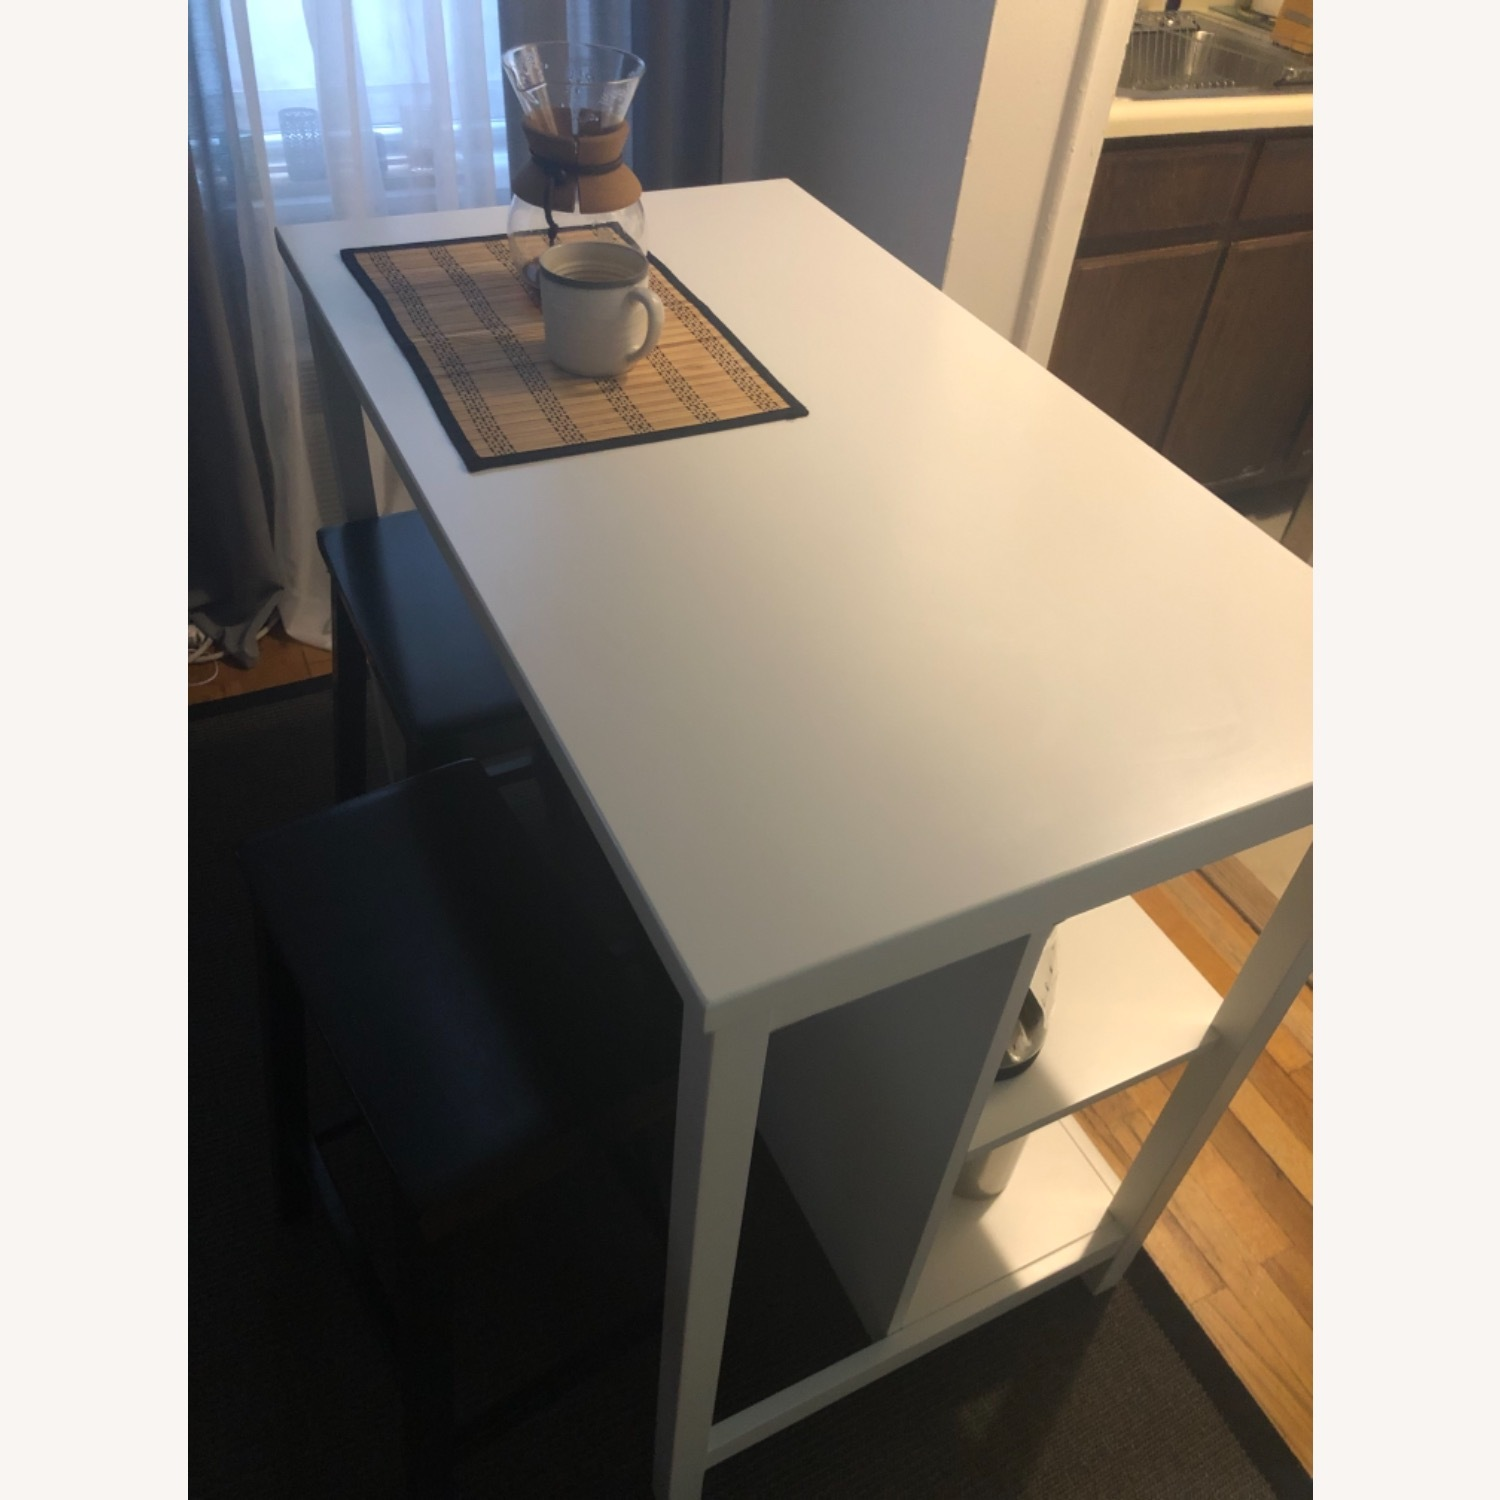 Pottery Barn Kitchen Island - image-2